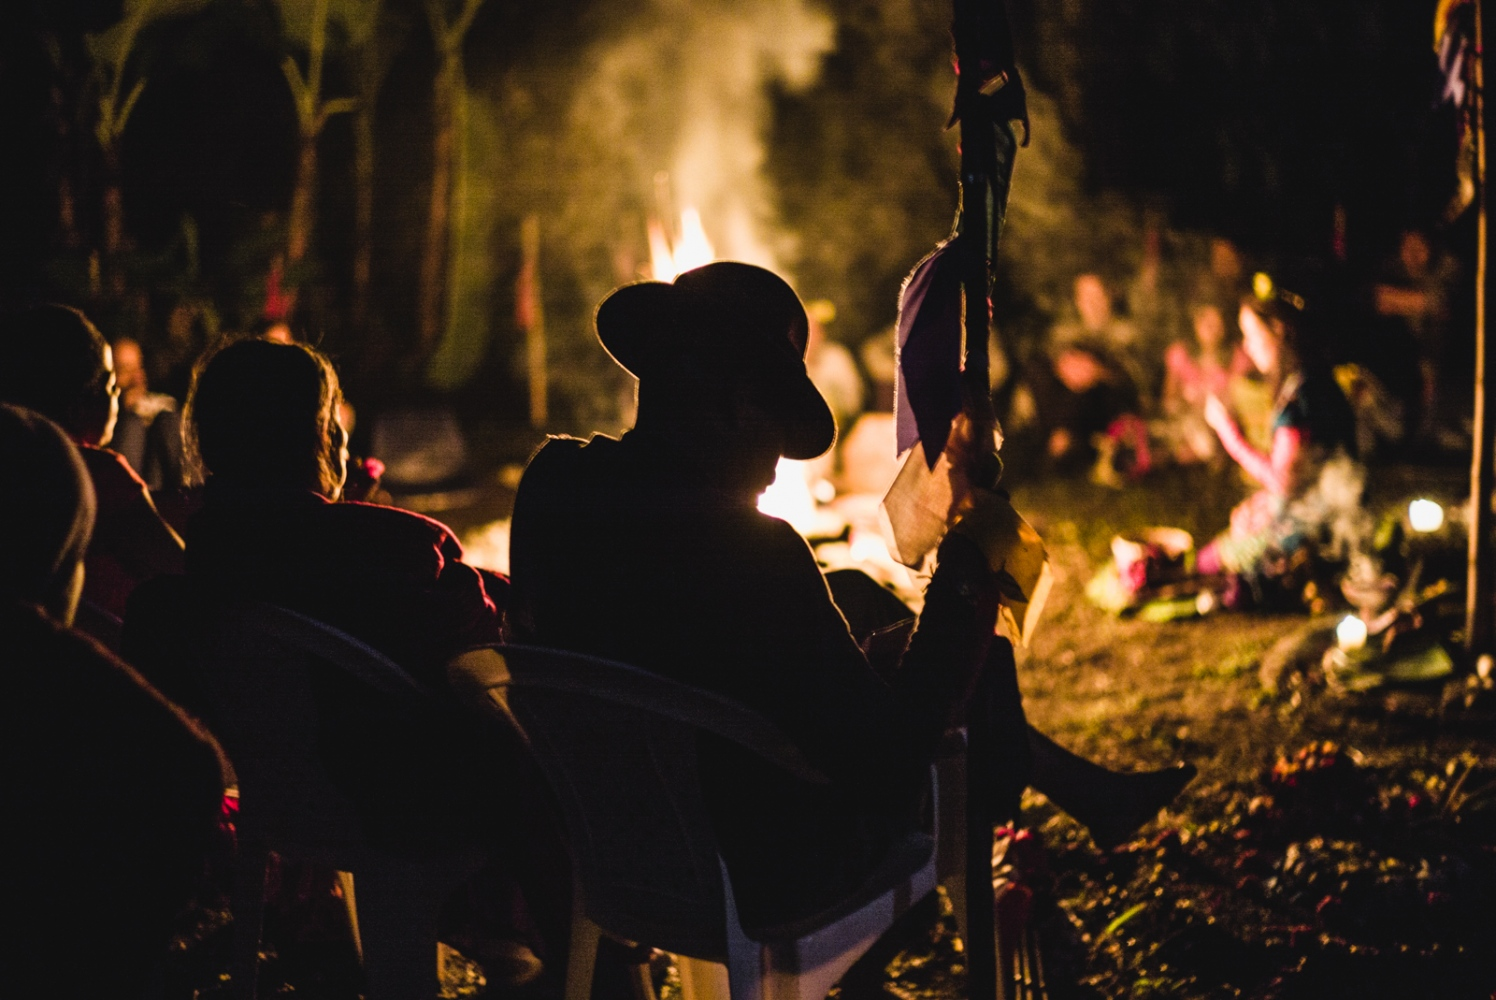 Visionaries and Supports gather around the sacred fire to bear witness to the prayers the questers offer up to the sacred fire during the Vision Quest.